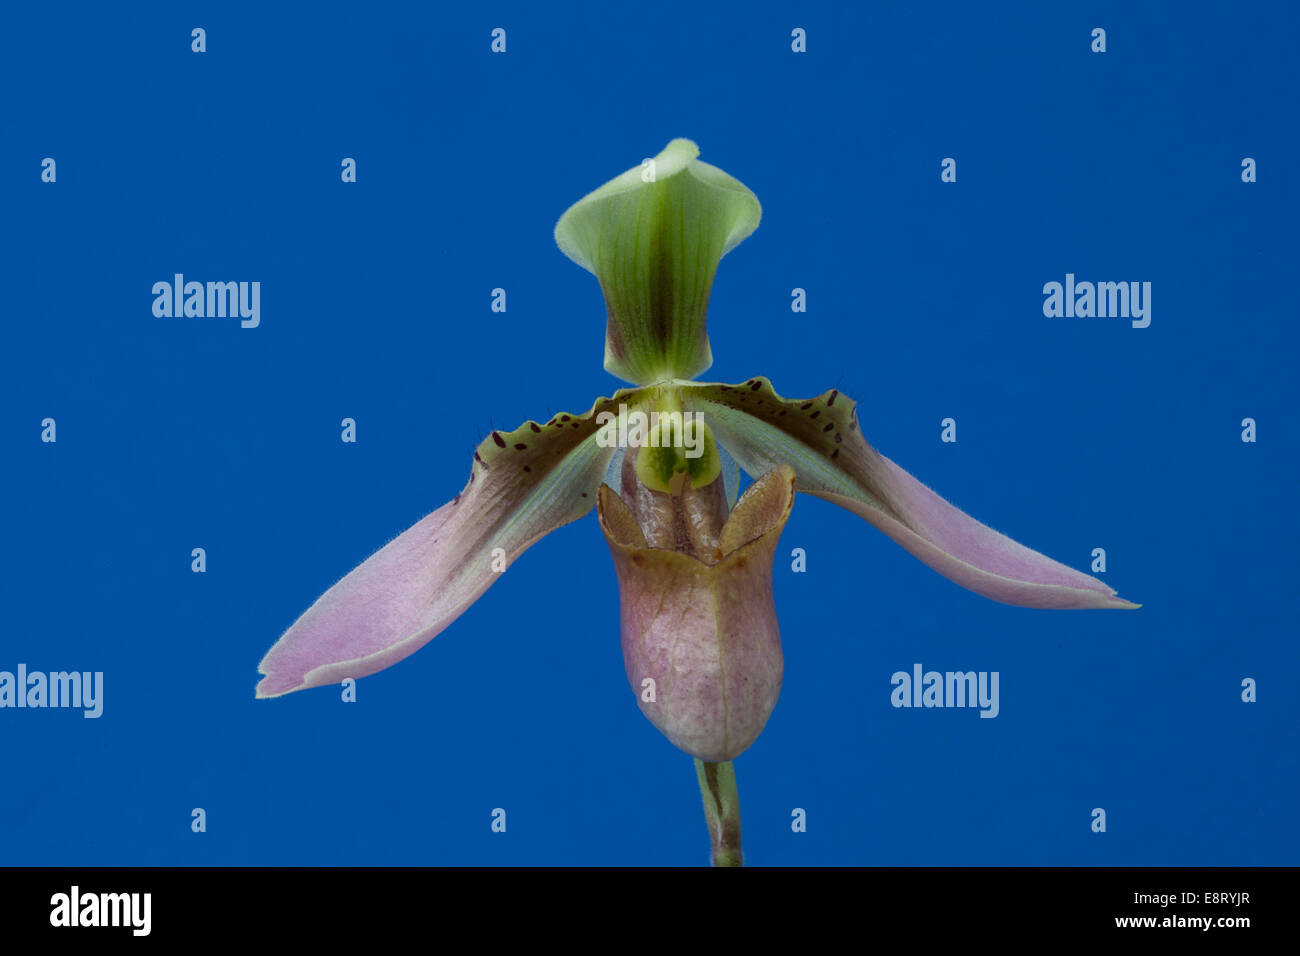 Orchid flower - Stock Image